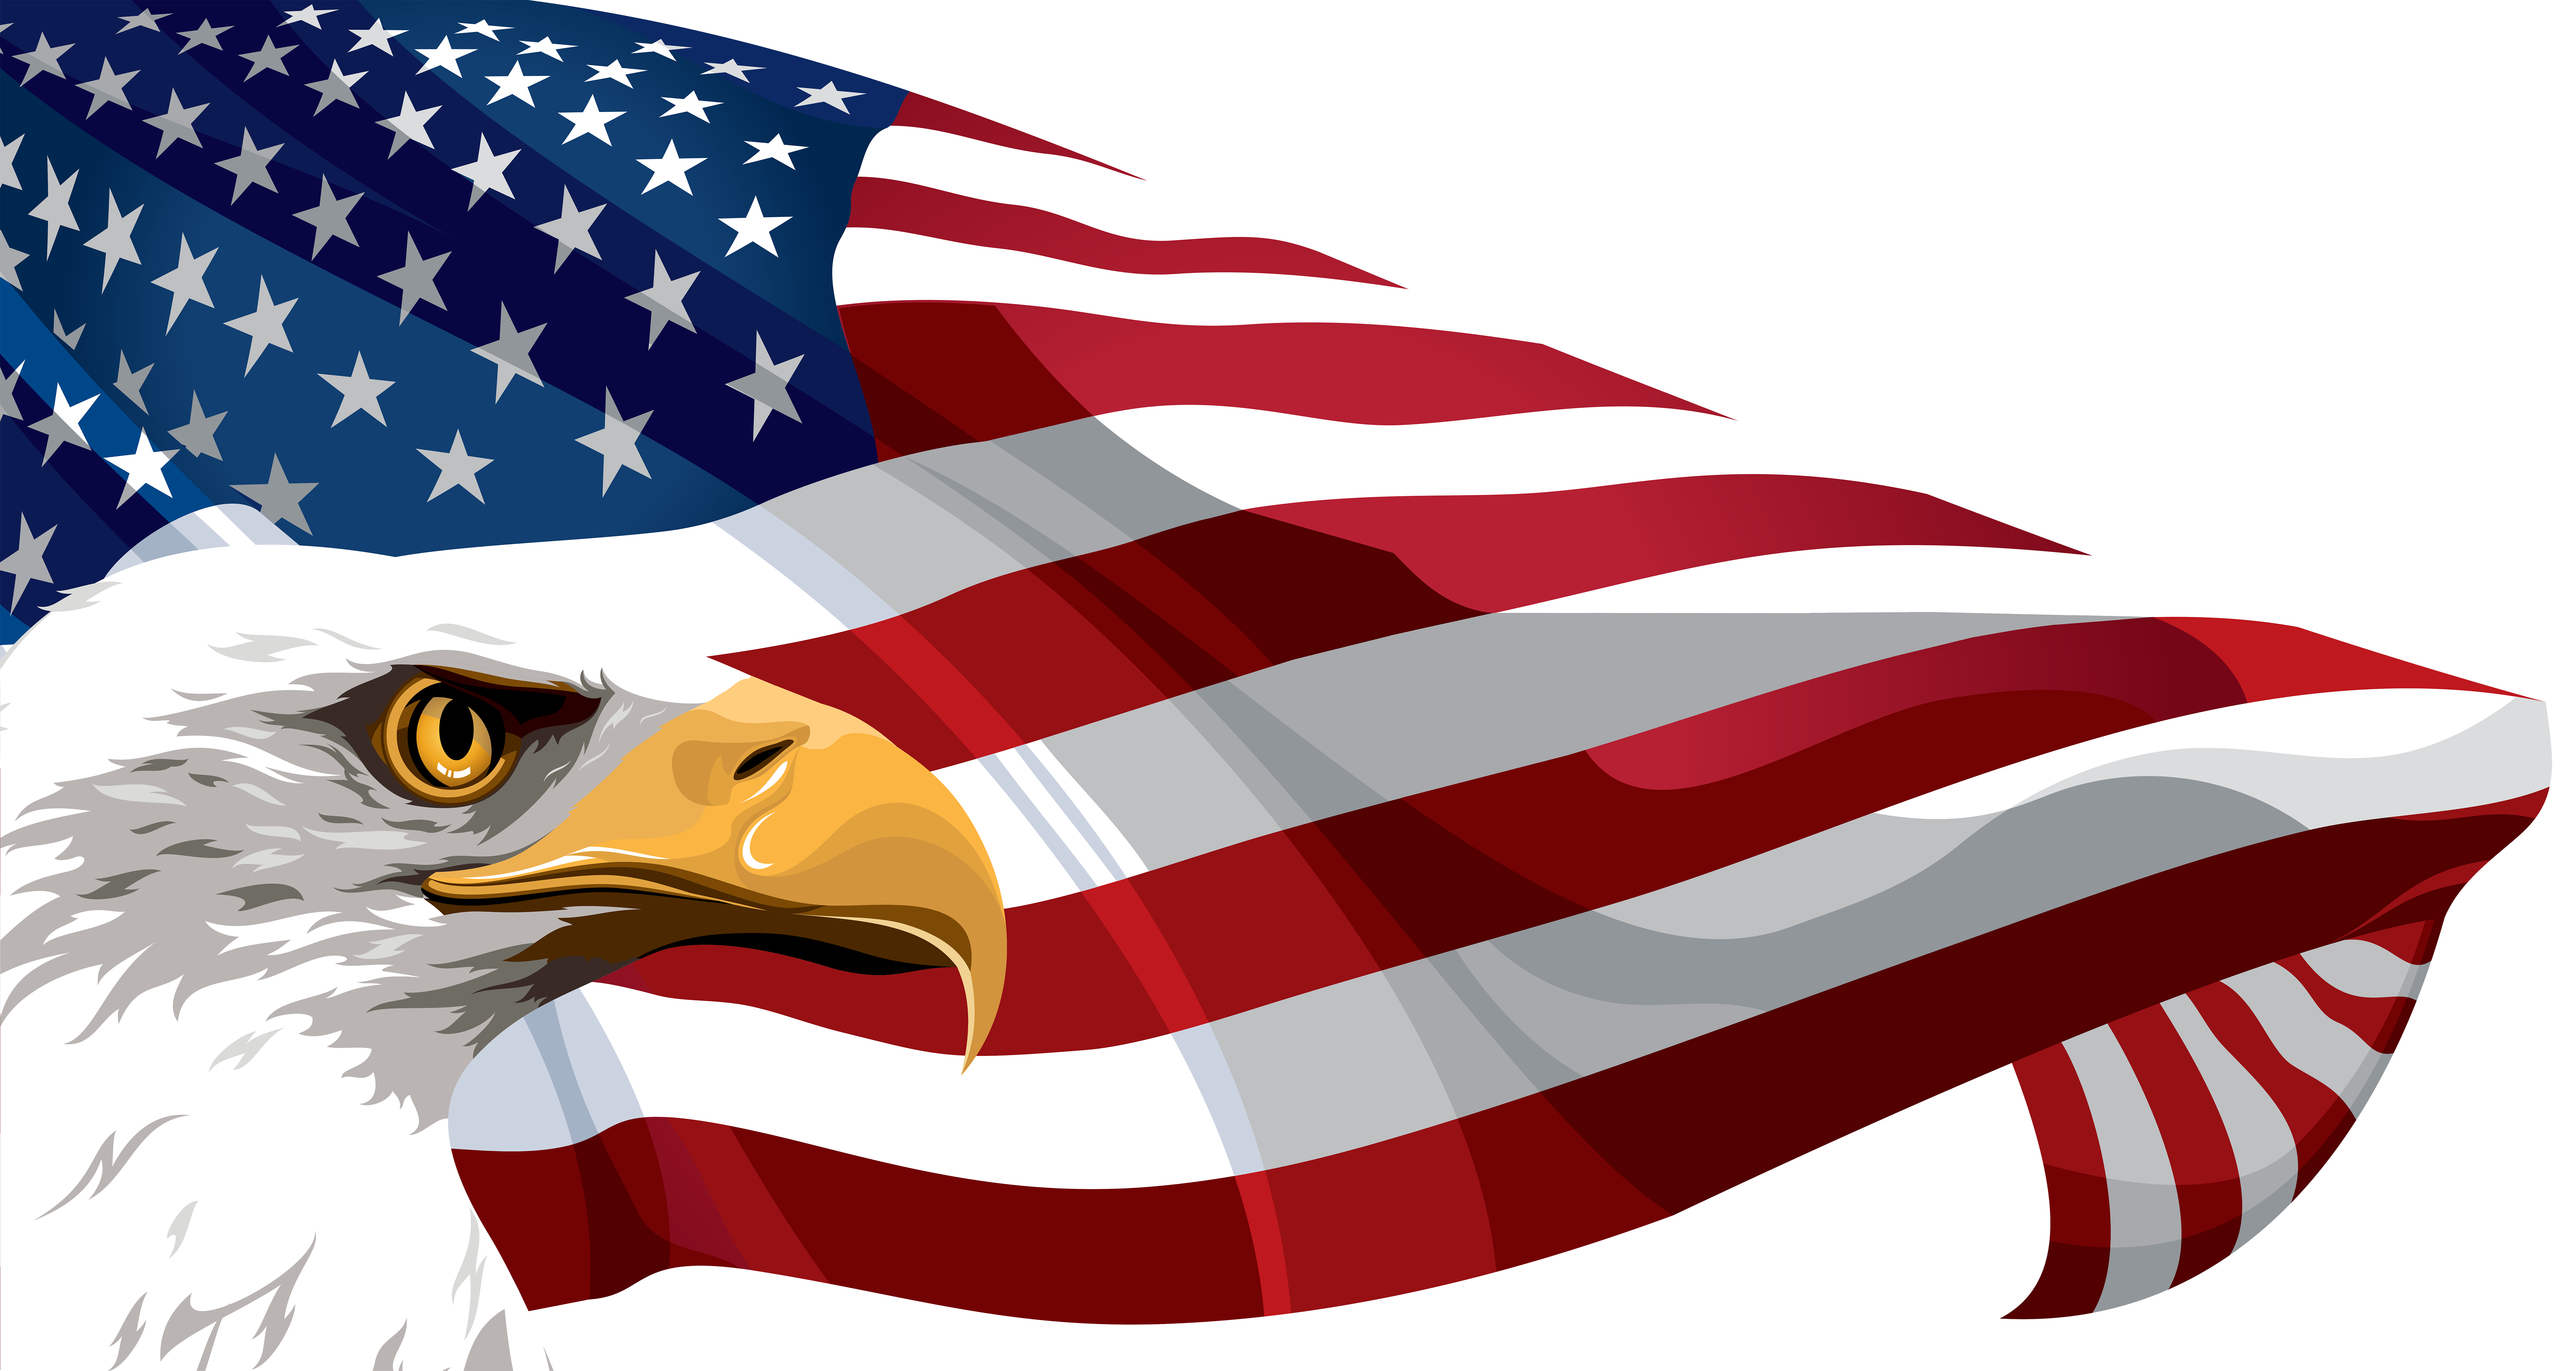 United states flag clipart free vector black and white stock Flag of the United States Clip art - American Flag and Eagle ... vector black and white stock